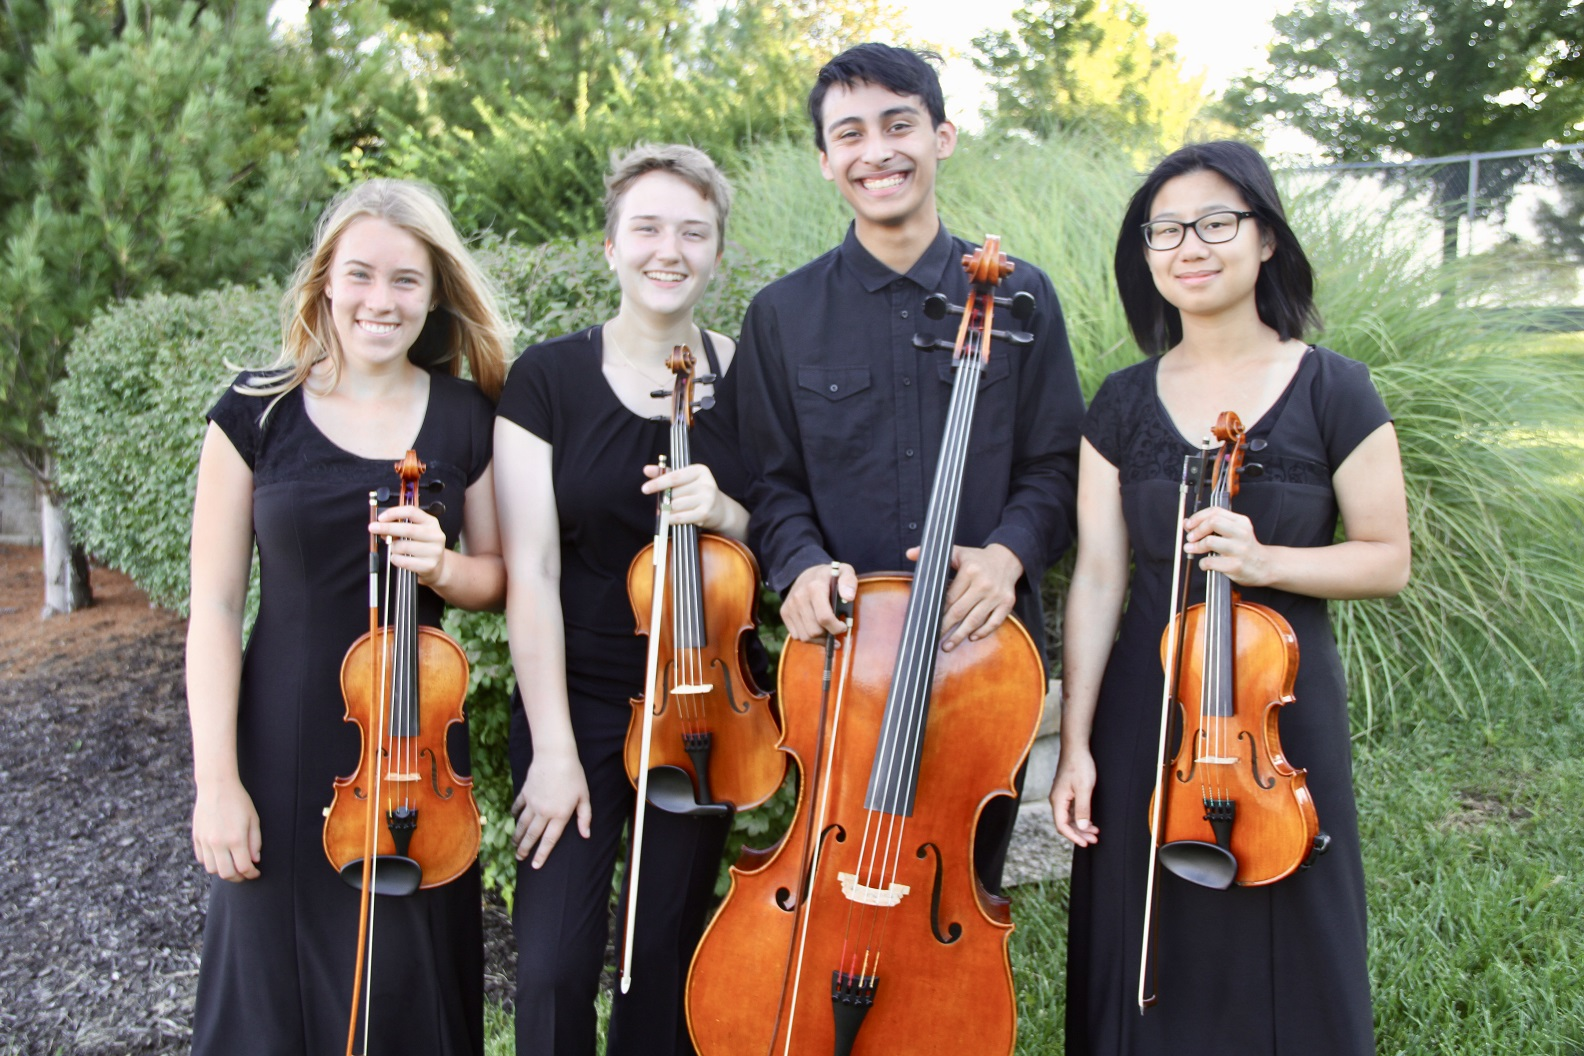 Local high school string quartet to join touring Beatles vs. Stones show on Lawrence stage